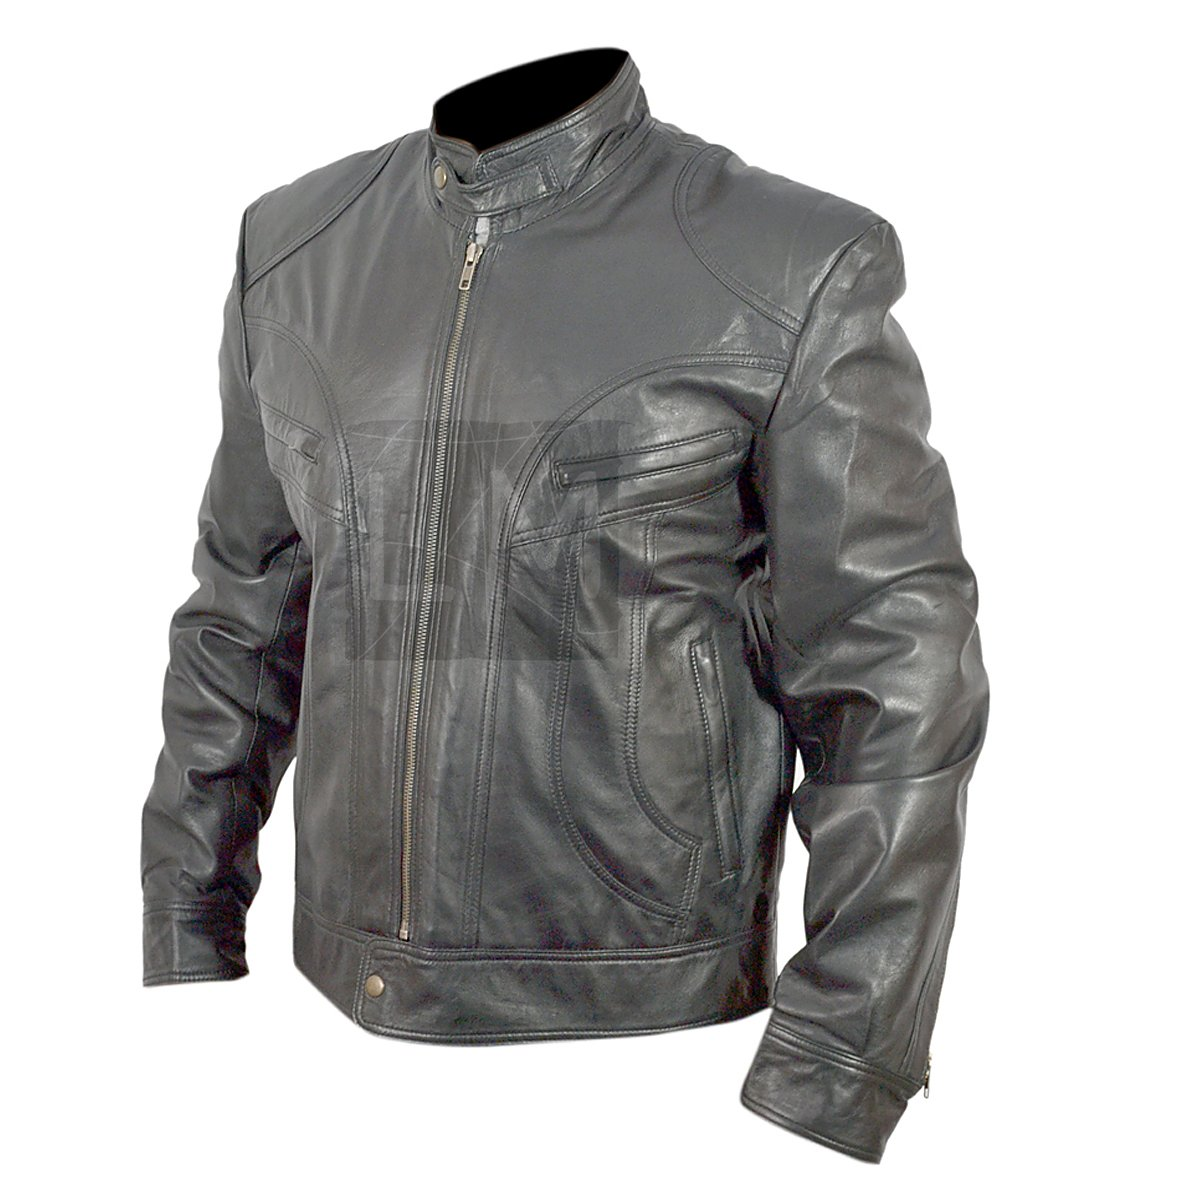 Ghosts of Girlfriends Past Black Leather Jacket